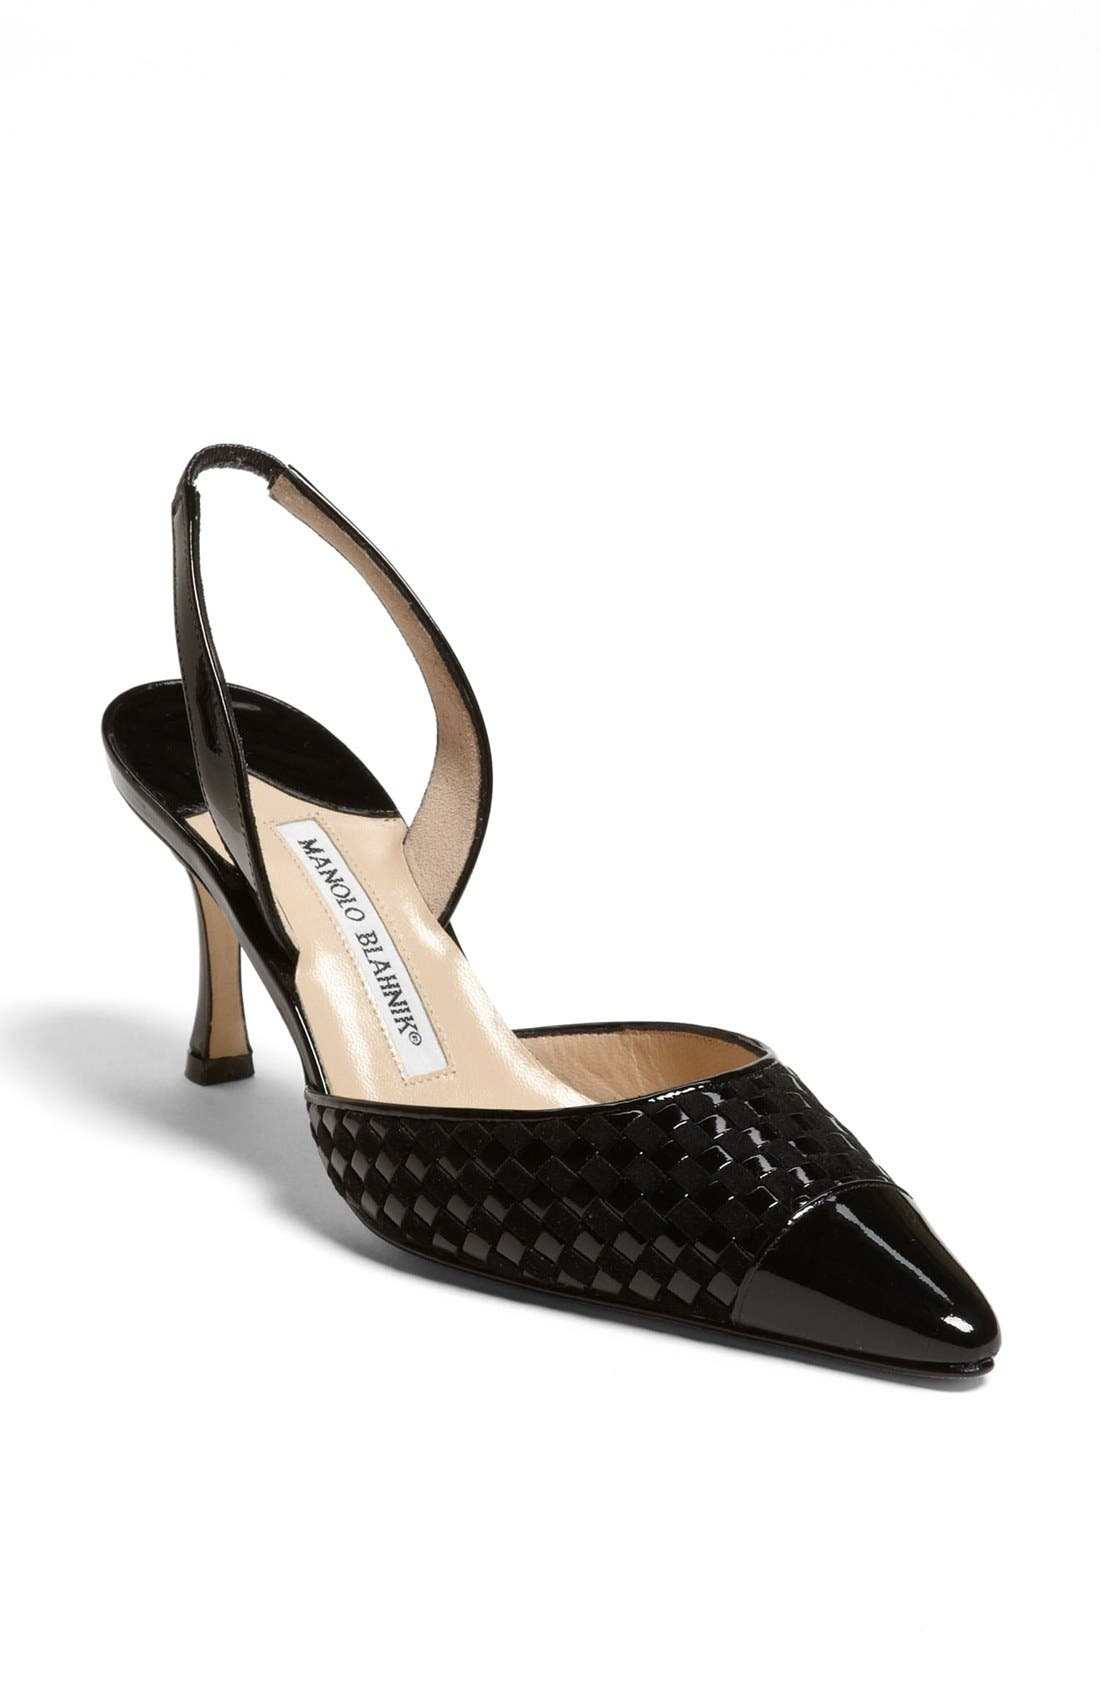 Alternate Image 1 Selected - Manolo Blahnik 'Irie' Pump